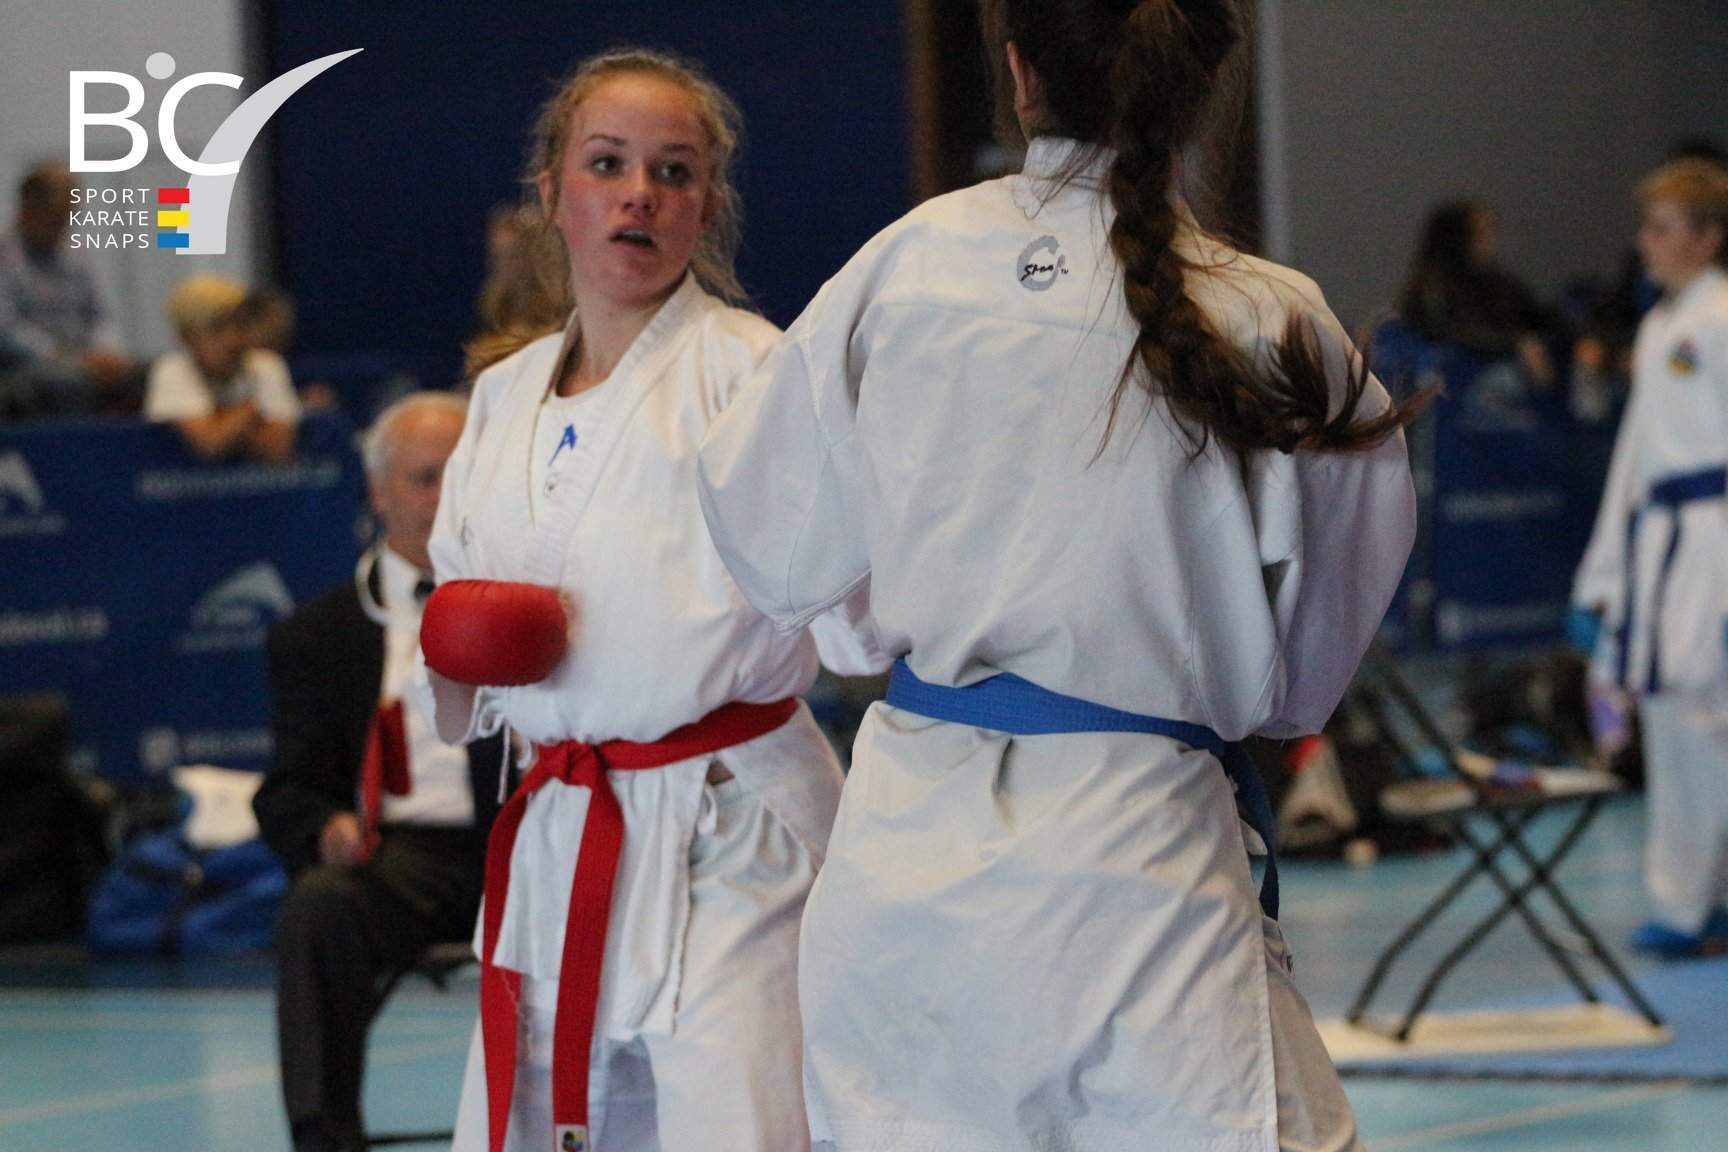 Sofia Devlin Photo BC Sport Karate Snaps